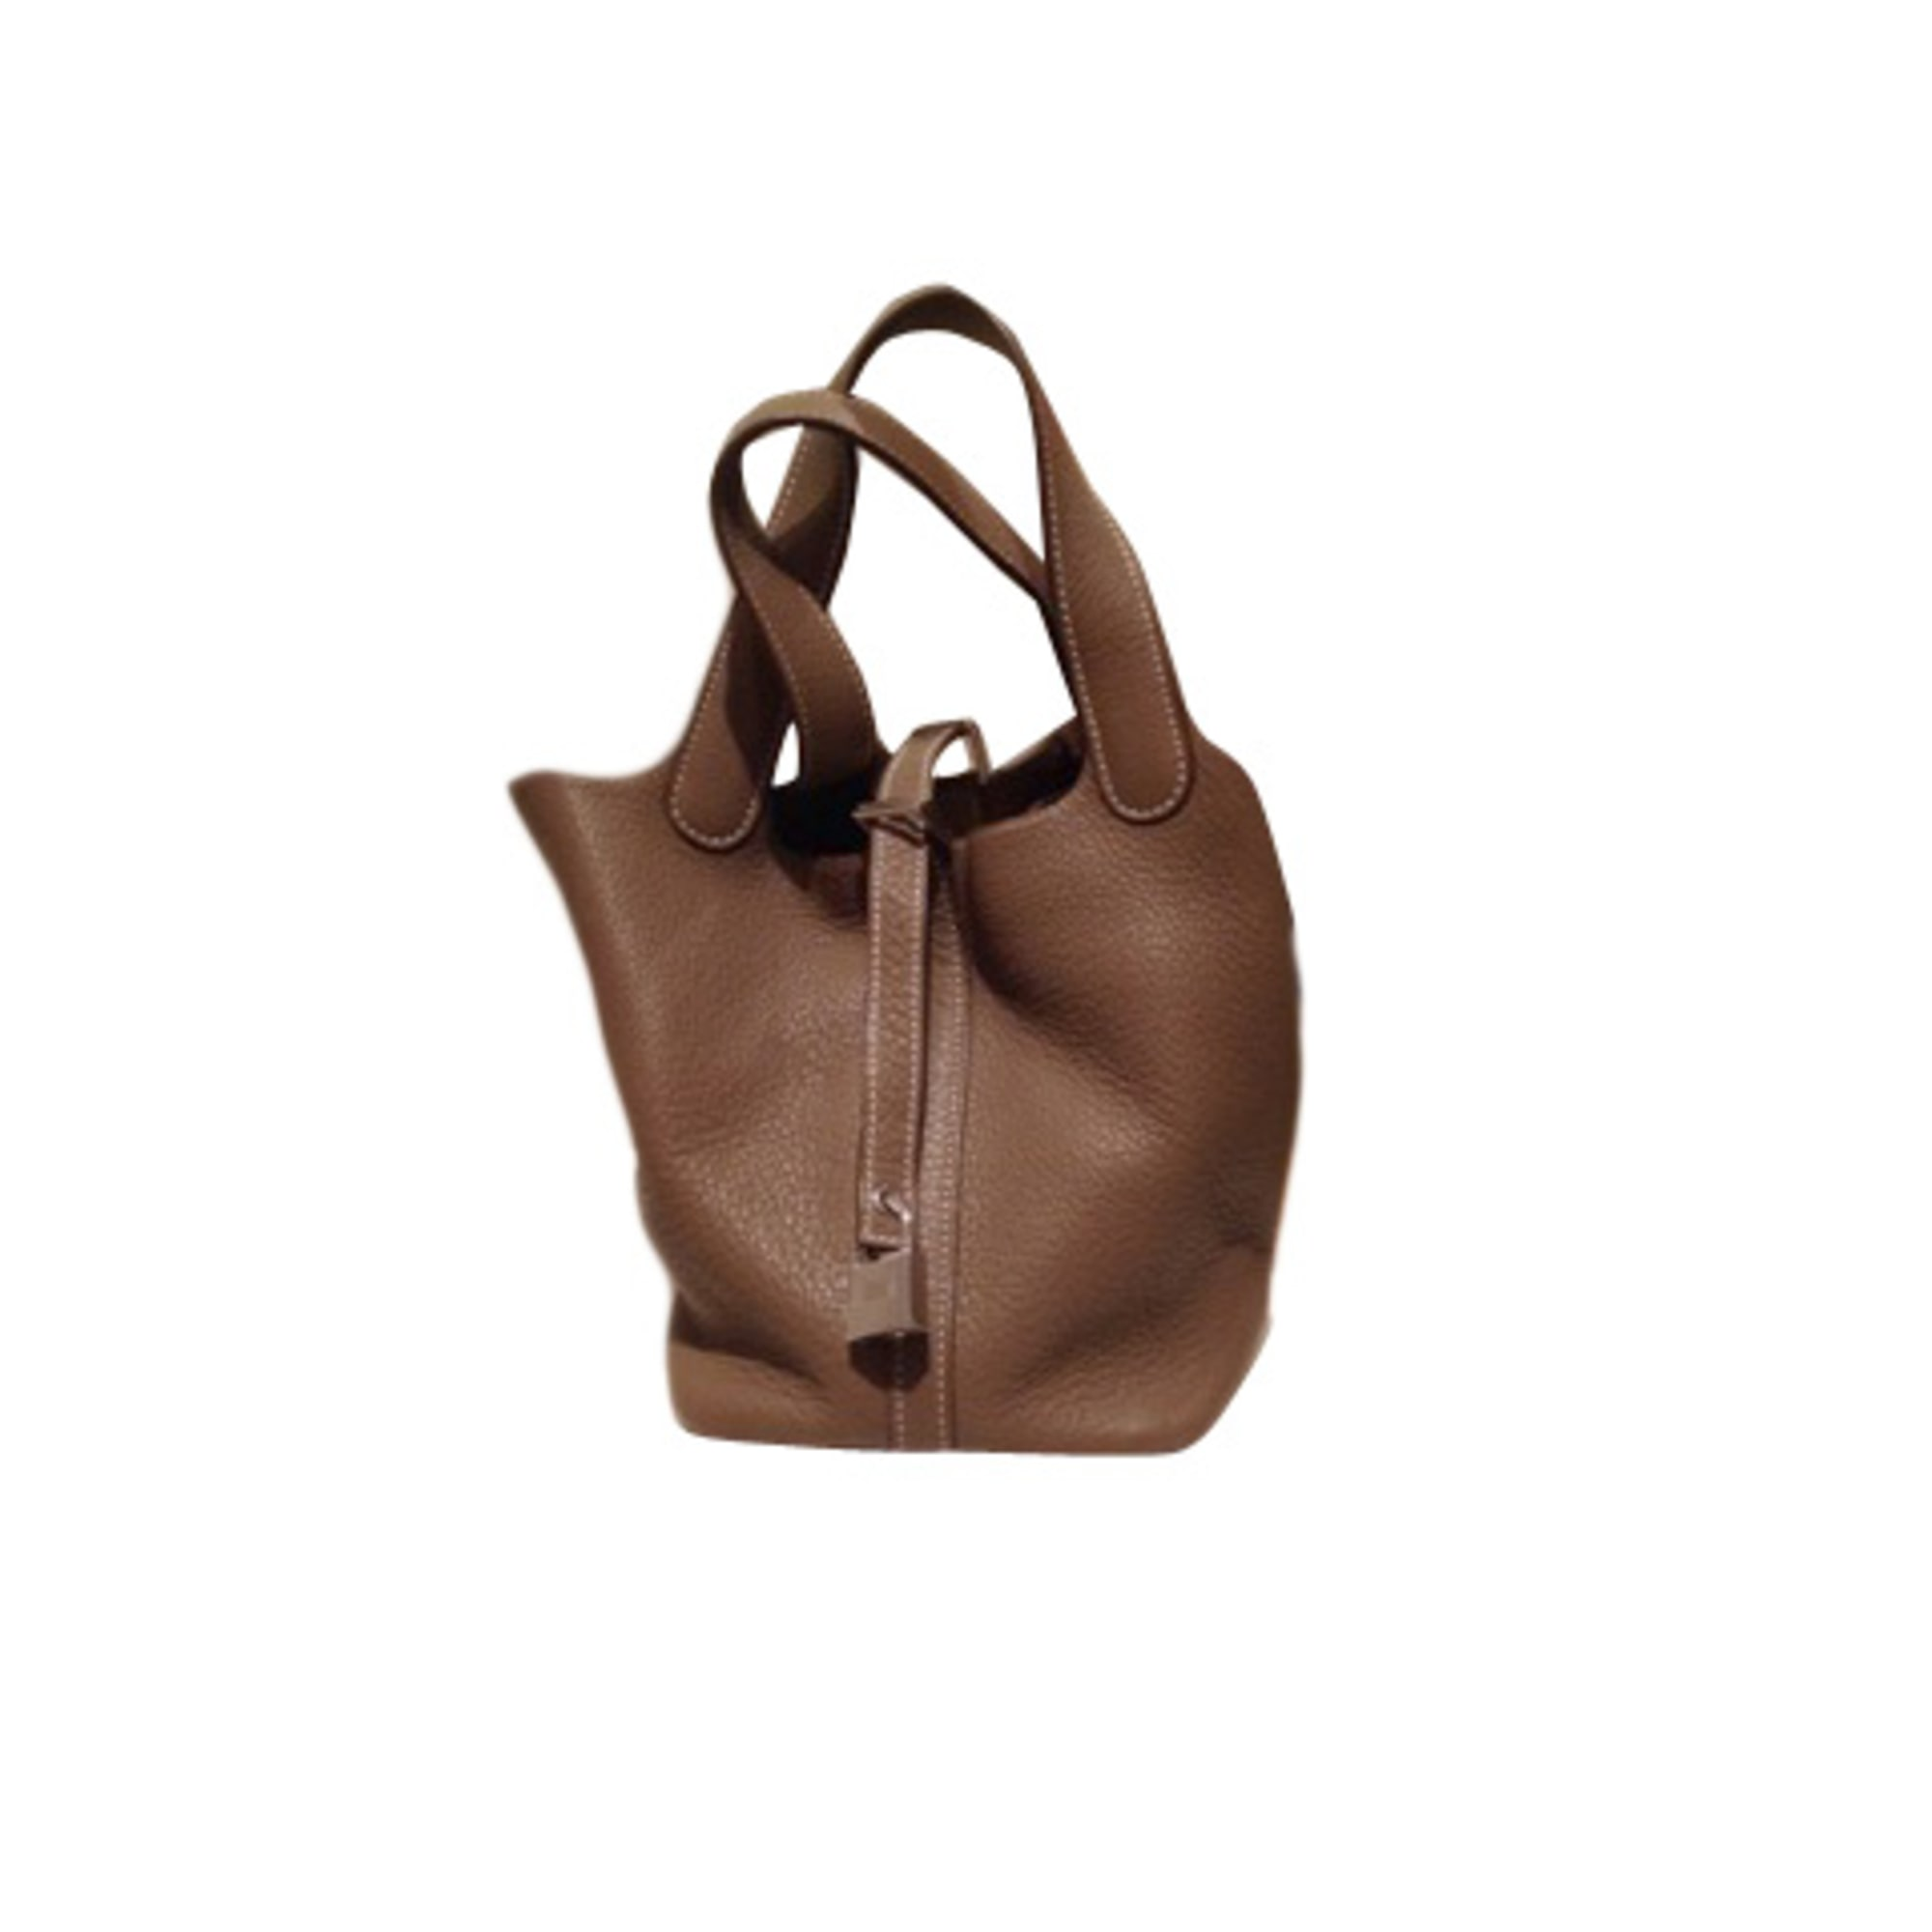 8c5fee82c6 Sac à main en cuir HERMÈS beige vendu par Beatrix kiddo - 2358219